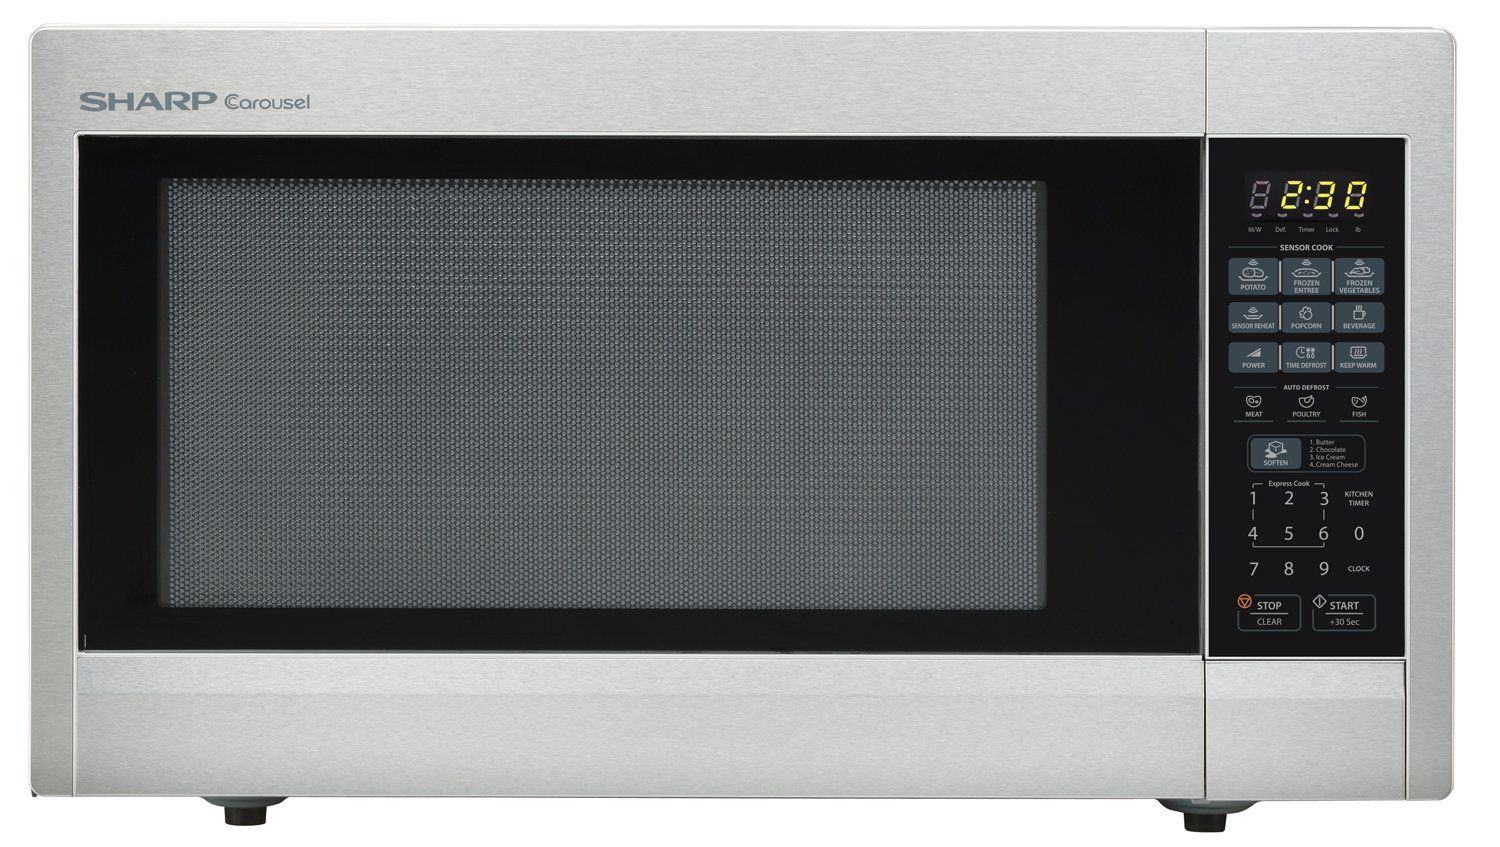 Sharp Countertop Microwave Oven Zr651zs 2 2 Cu Ft 1200w